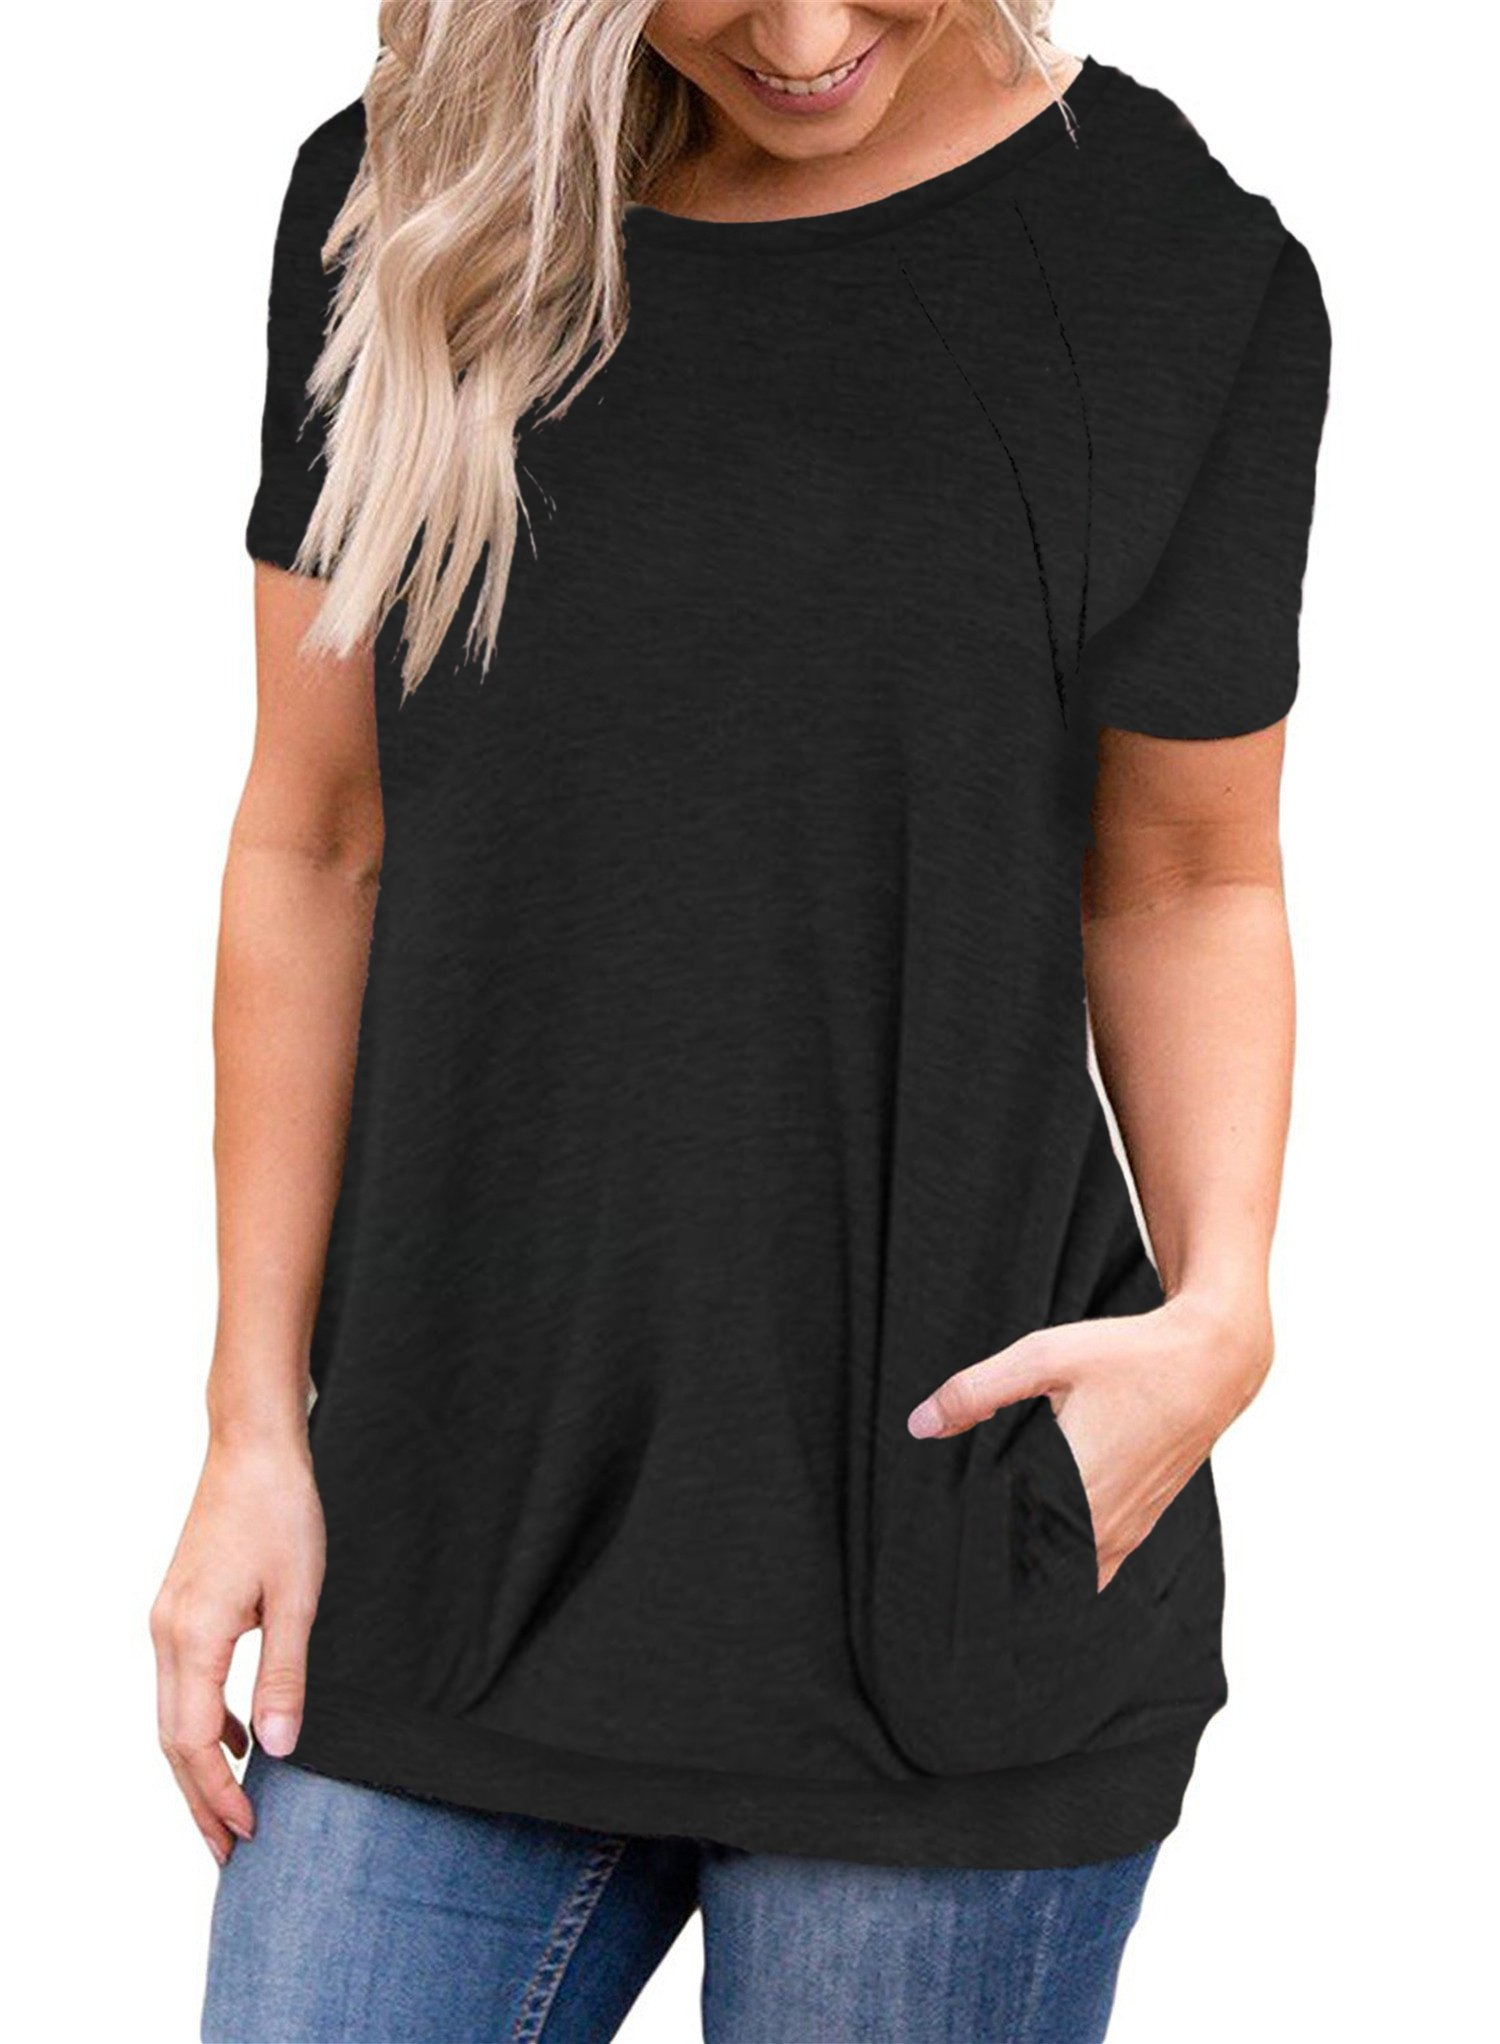 onlypuff Summer Basic Tops for Women Round Neck Batwing Short Sleeve Tunic Tops Solid Color Black XL